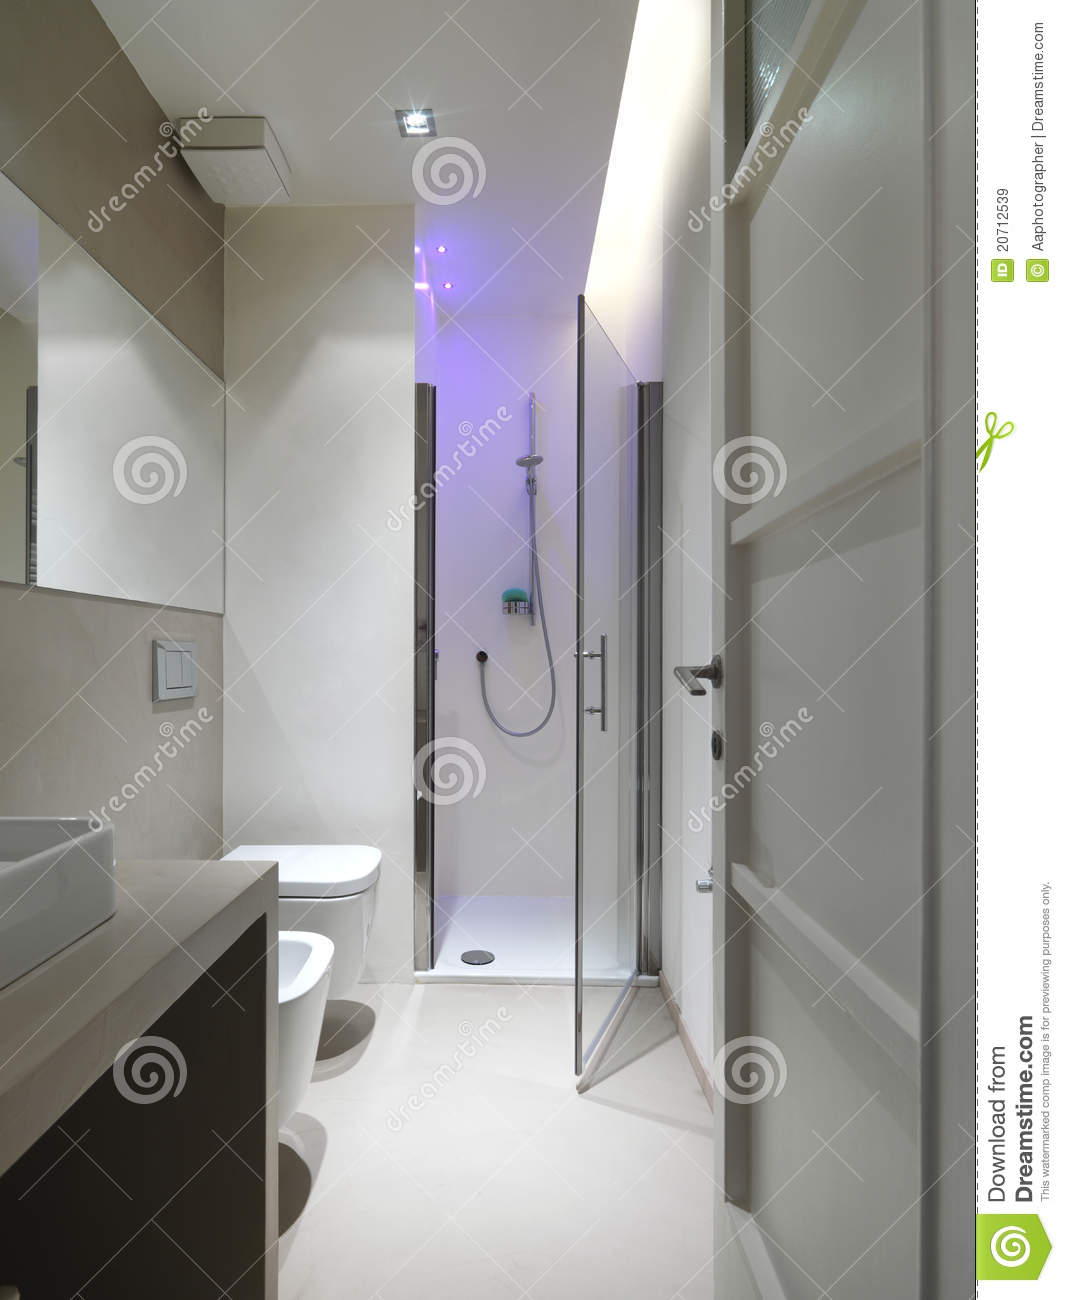 Free Bathroom Floor Plans Modern Bathroom With Shower Cubicle Stock Image Image